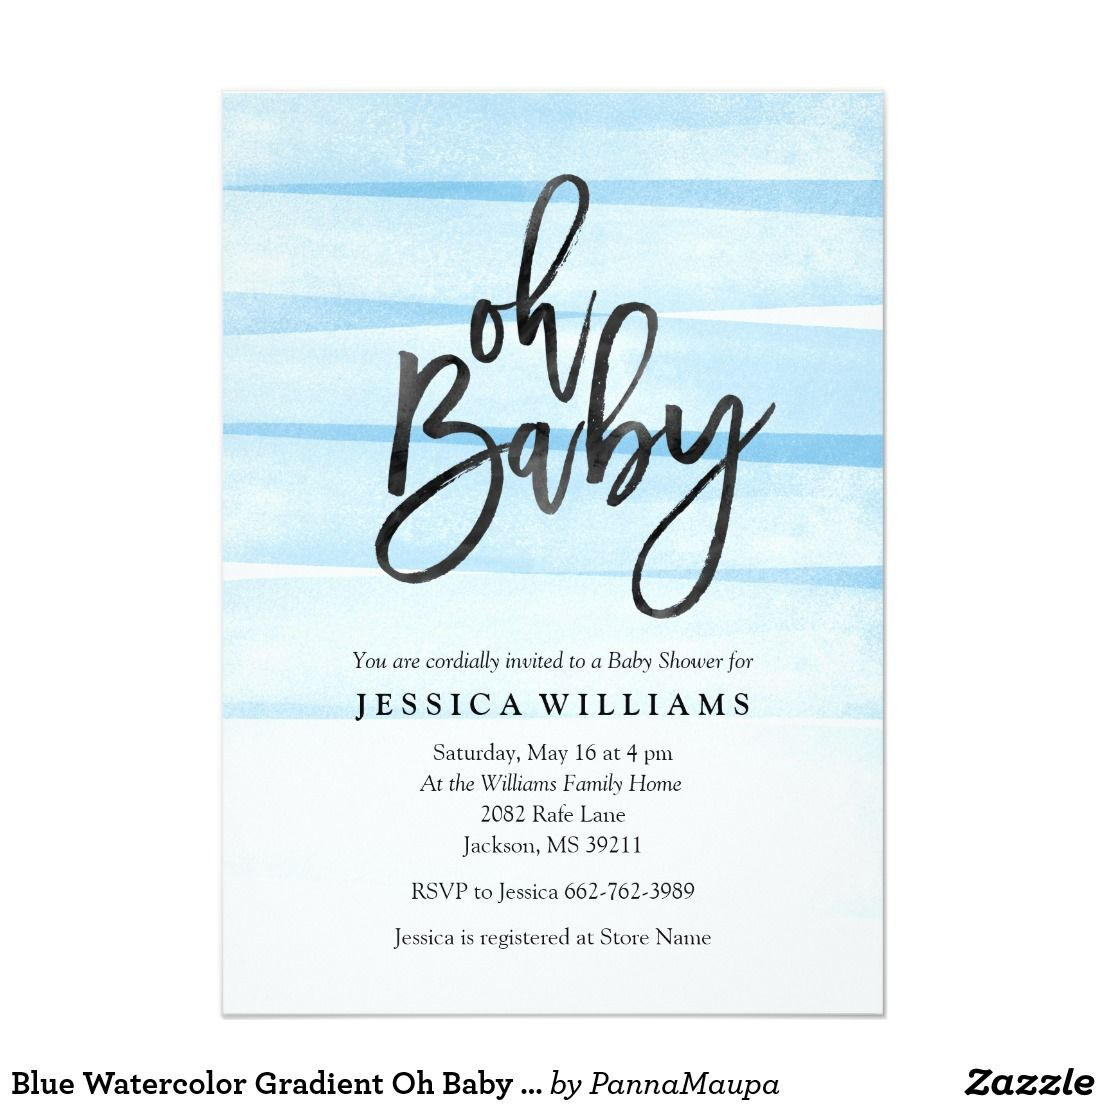 Blue Watercolor Gradient Oh Baby Shower Invitation | Baby Shower ...